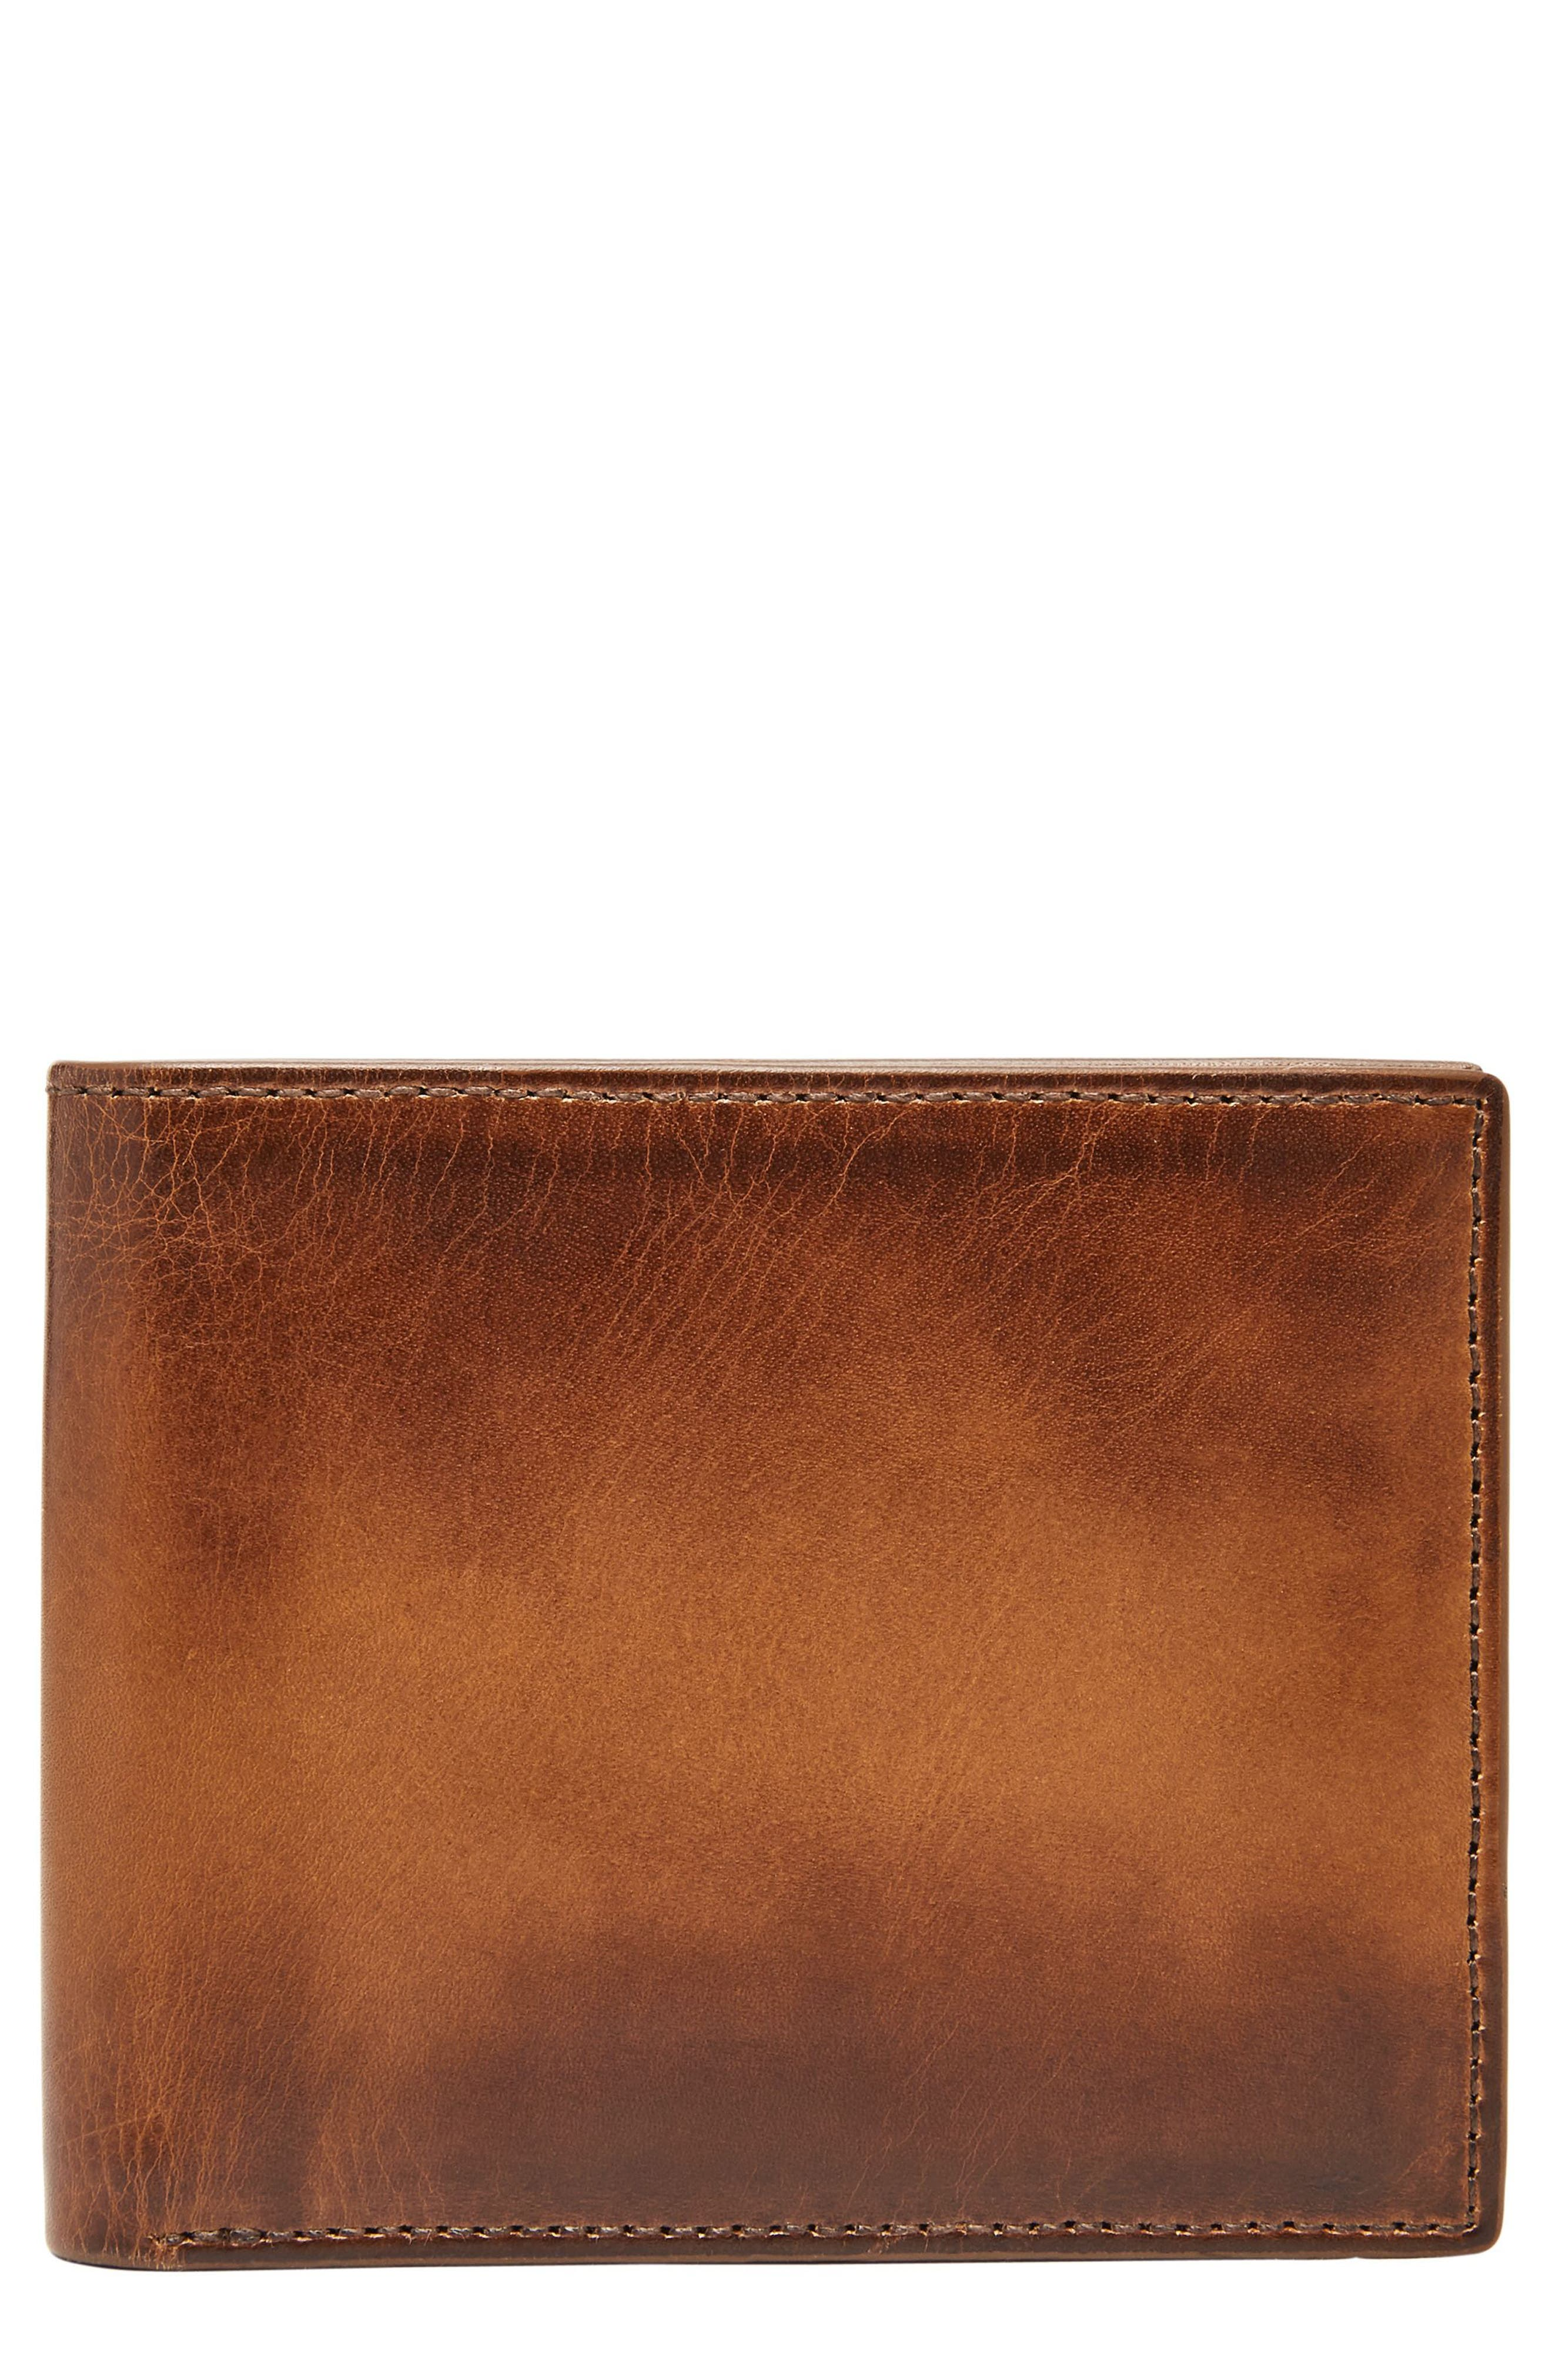 Paul Leather Wallet,                         Main,                         color,